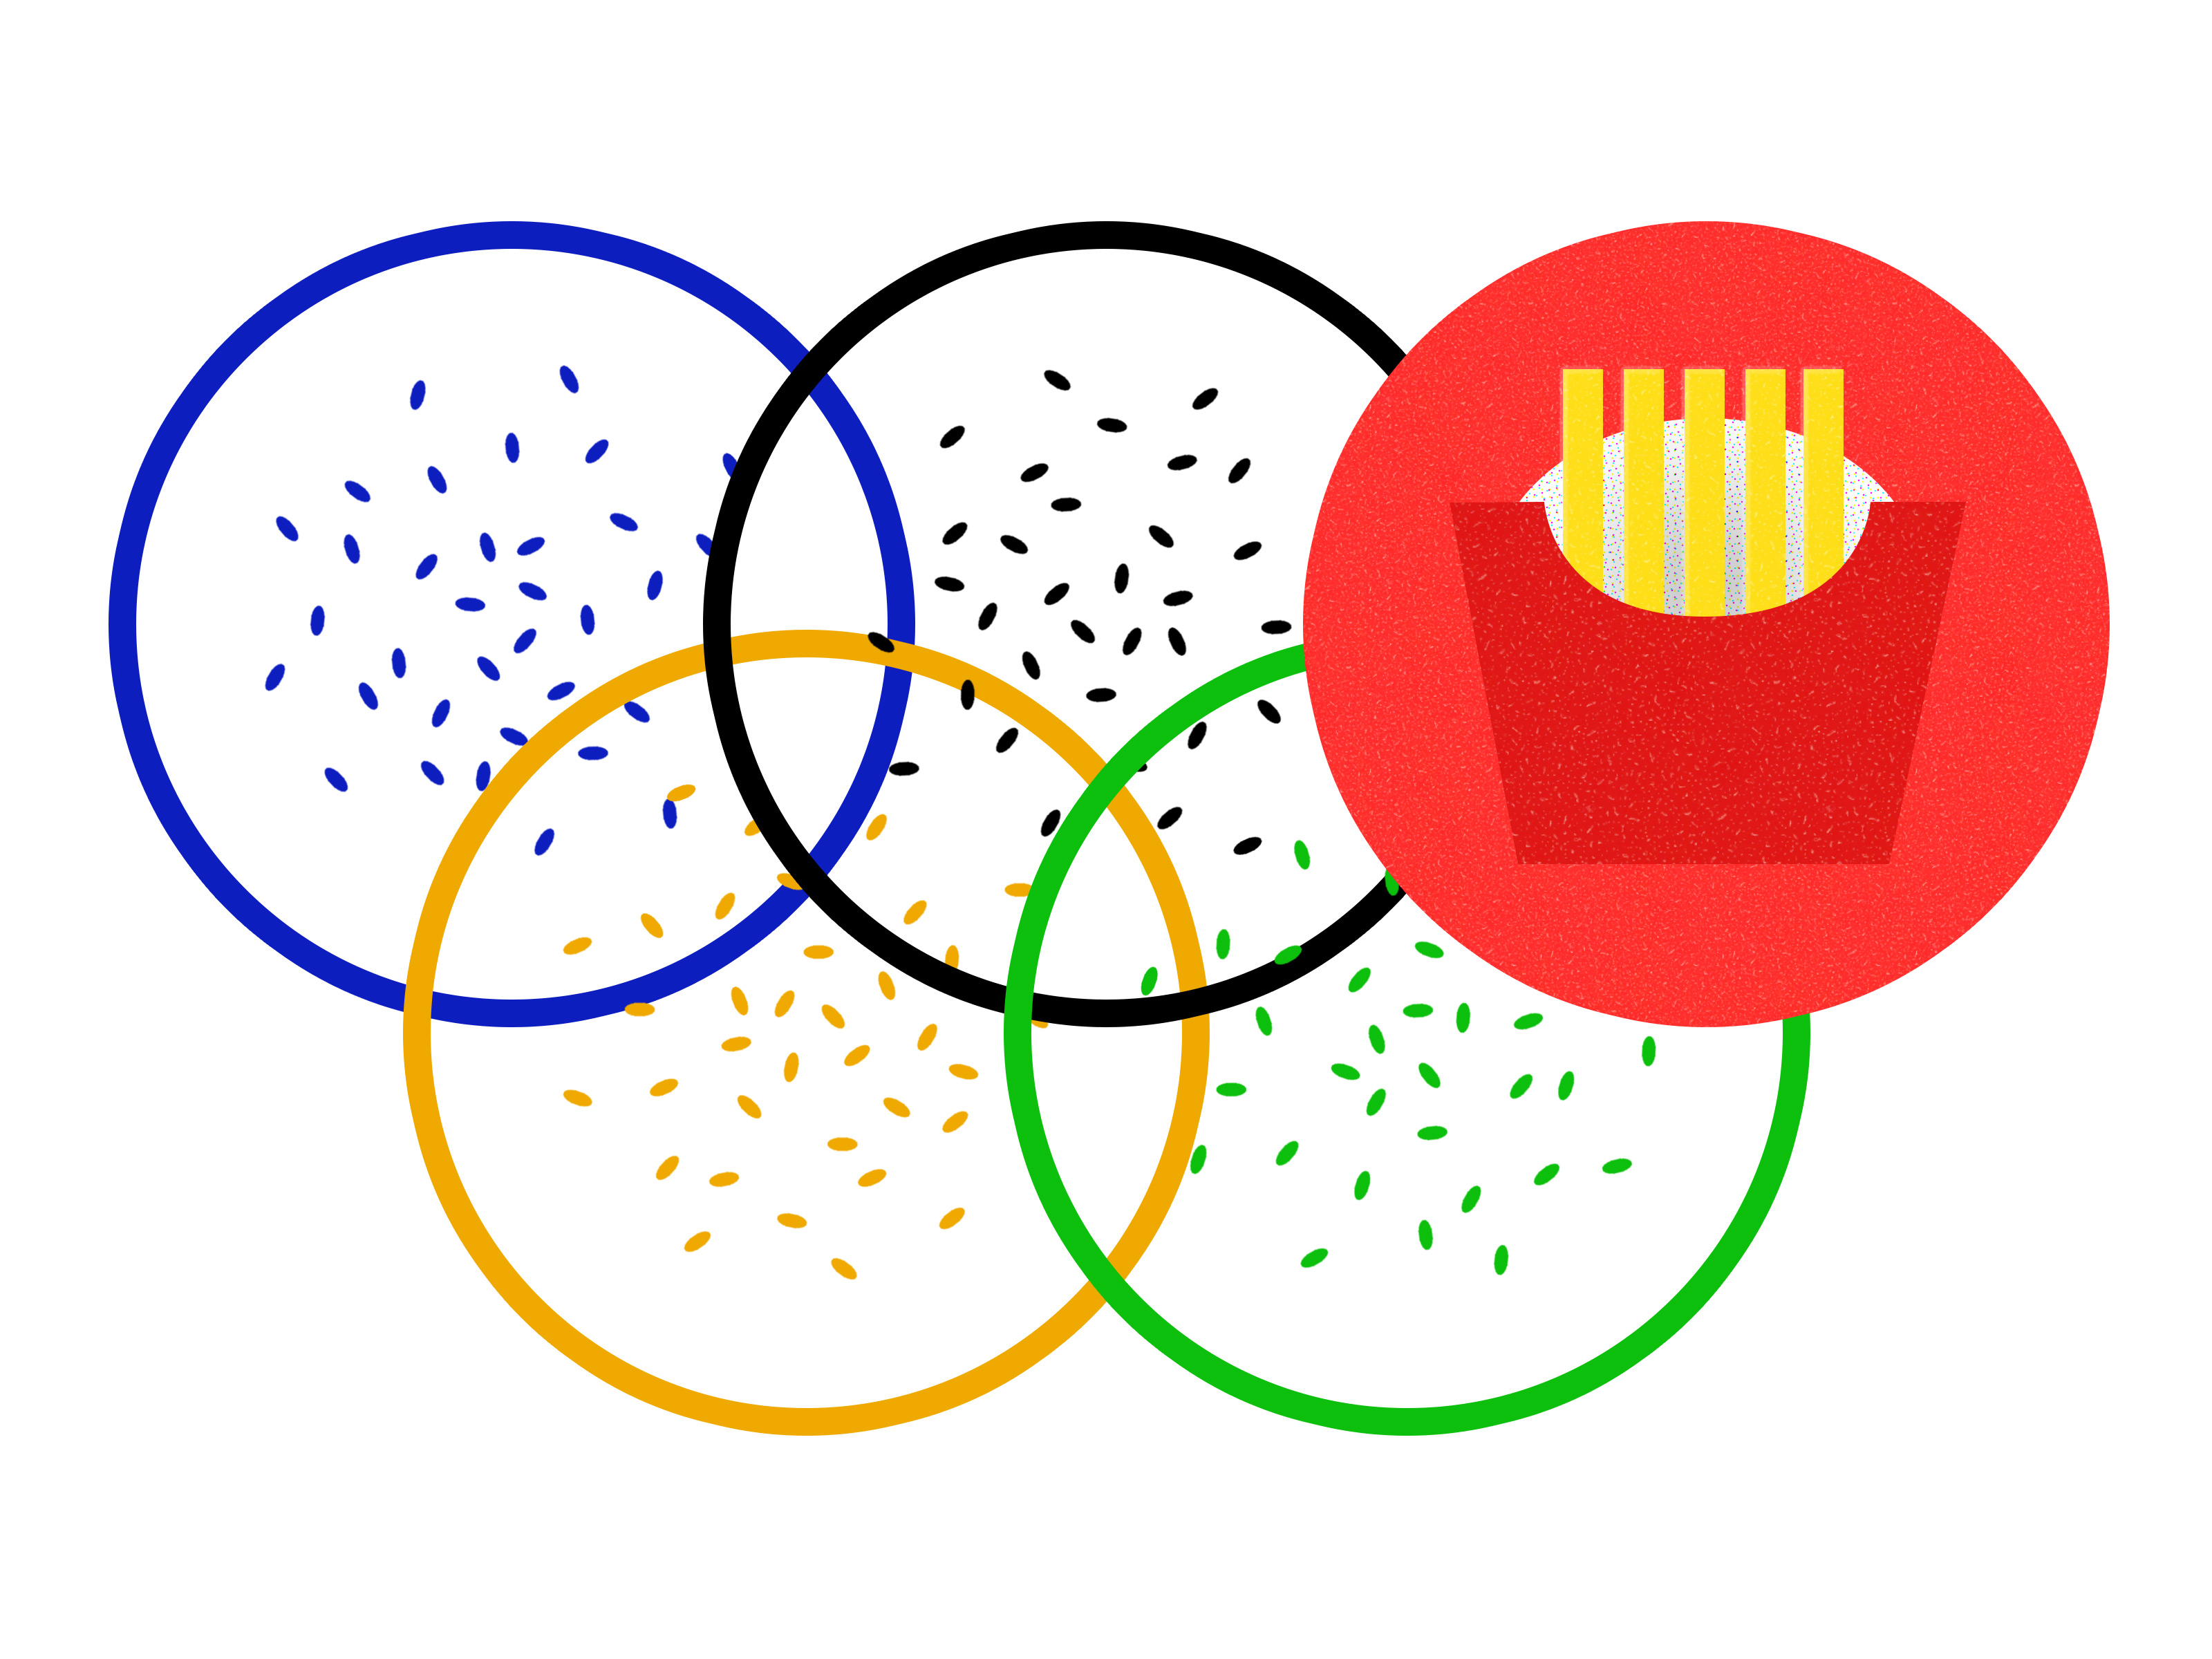 Illustration of Olympic rings dusted with sesame seeds, and a box of McDonald's french fries over the red ring